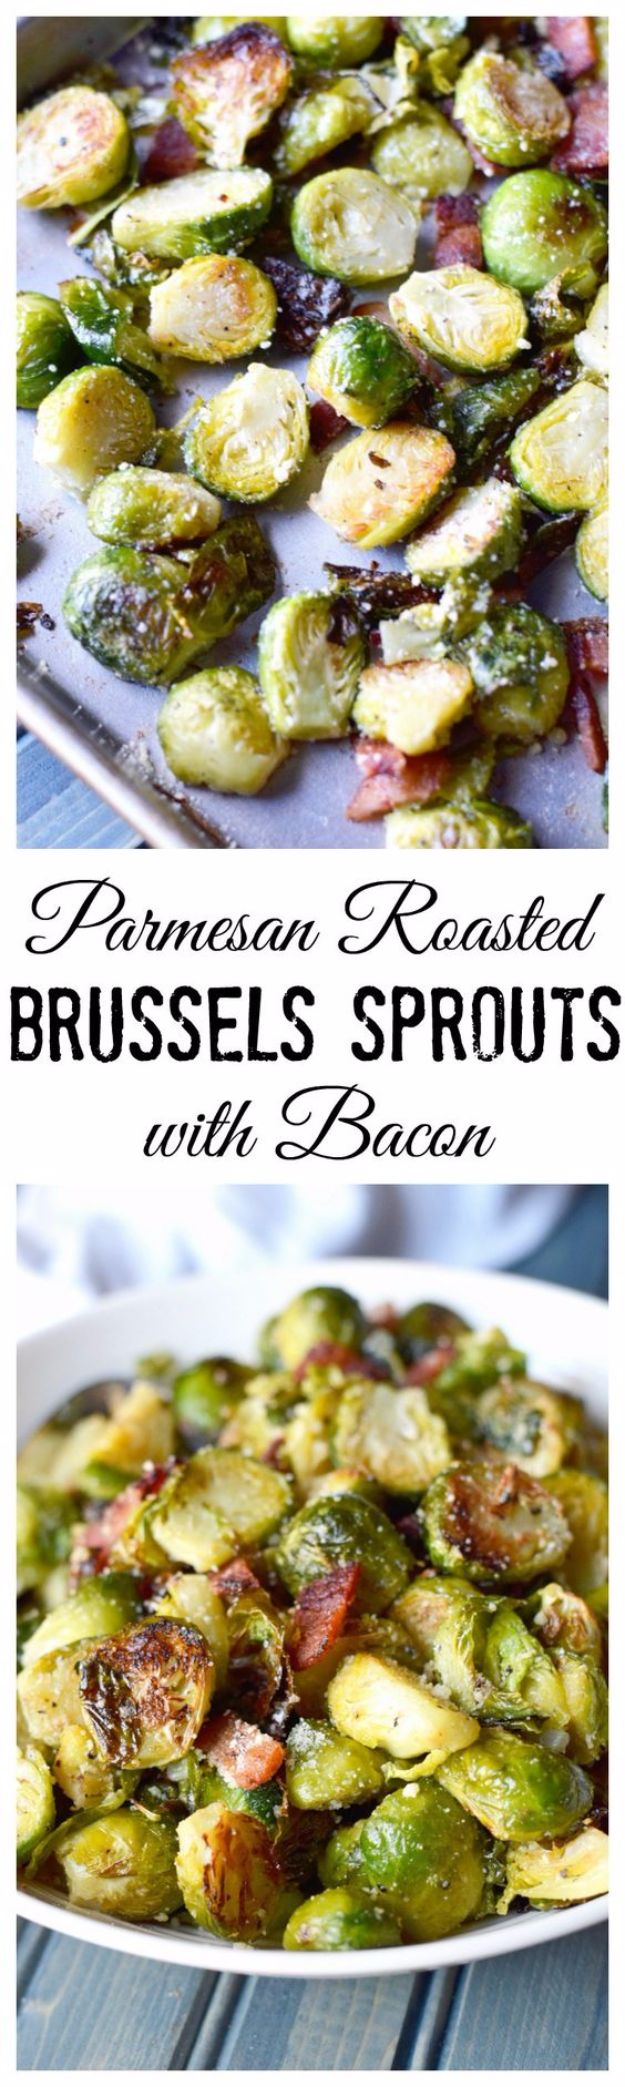 Best Brussel Sprout Recipes - Parmesan Roasted Brussels Sprouts With Bacon - Easy and Quick Delicious Ideas for Making Brussel Sprouts With Bacon, Roasted, Creamy, Healthy, Baked, Sauteed, Crockpot, Grilled, Shredded and Salad Recipe Ideas - Cool Lunches, Dinner, Snack, Side and DIY Dinner Vegetable Dishes http://diyjoy.com/best-brussel-sprout-recipes